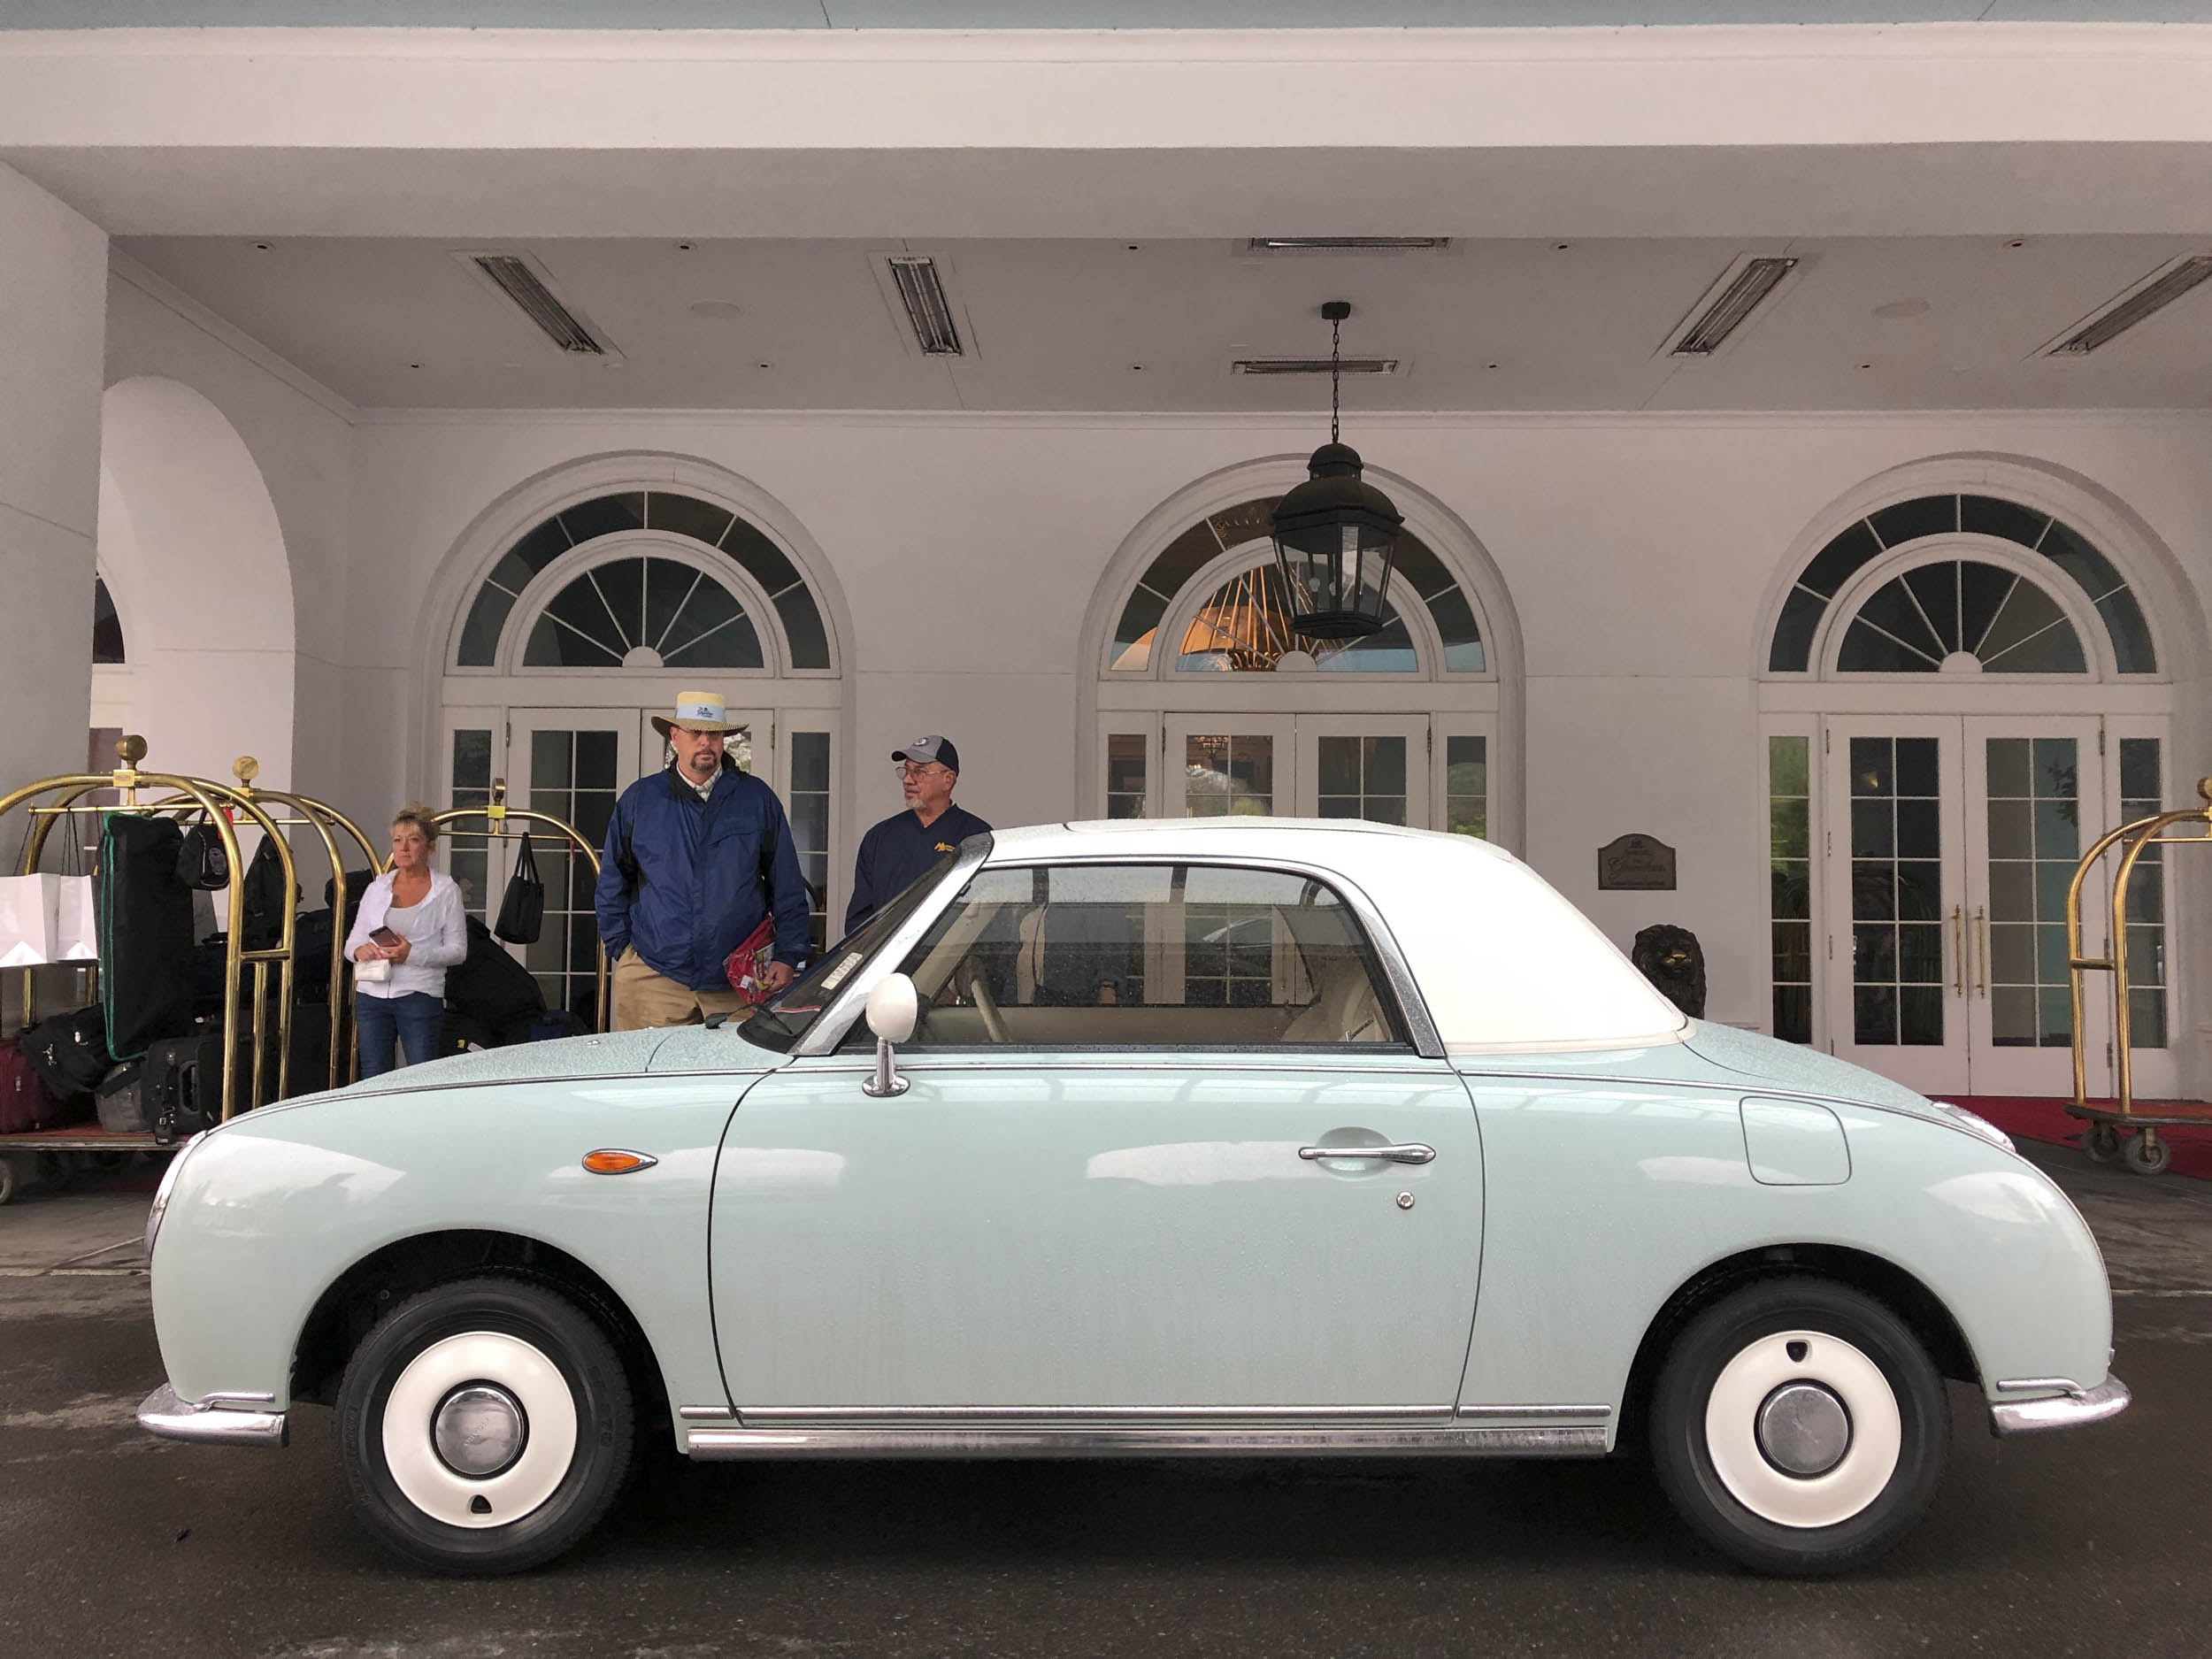 1991 Nissan Figaro outside of a hotel loby